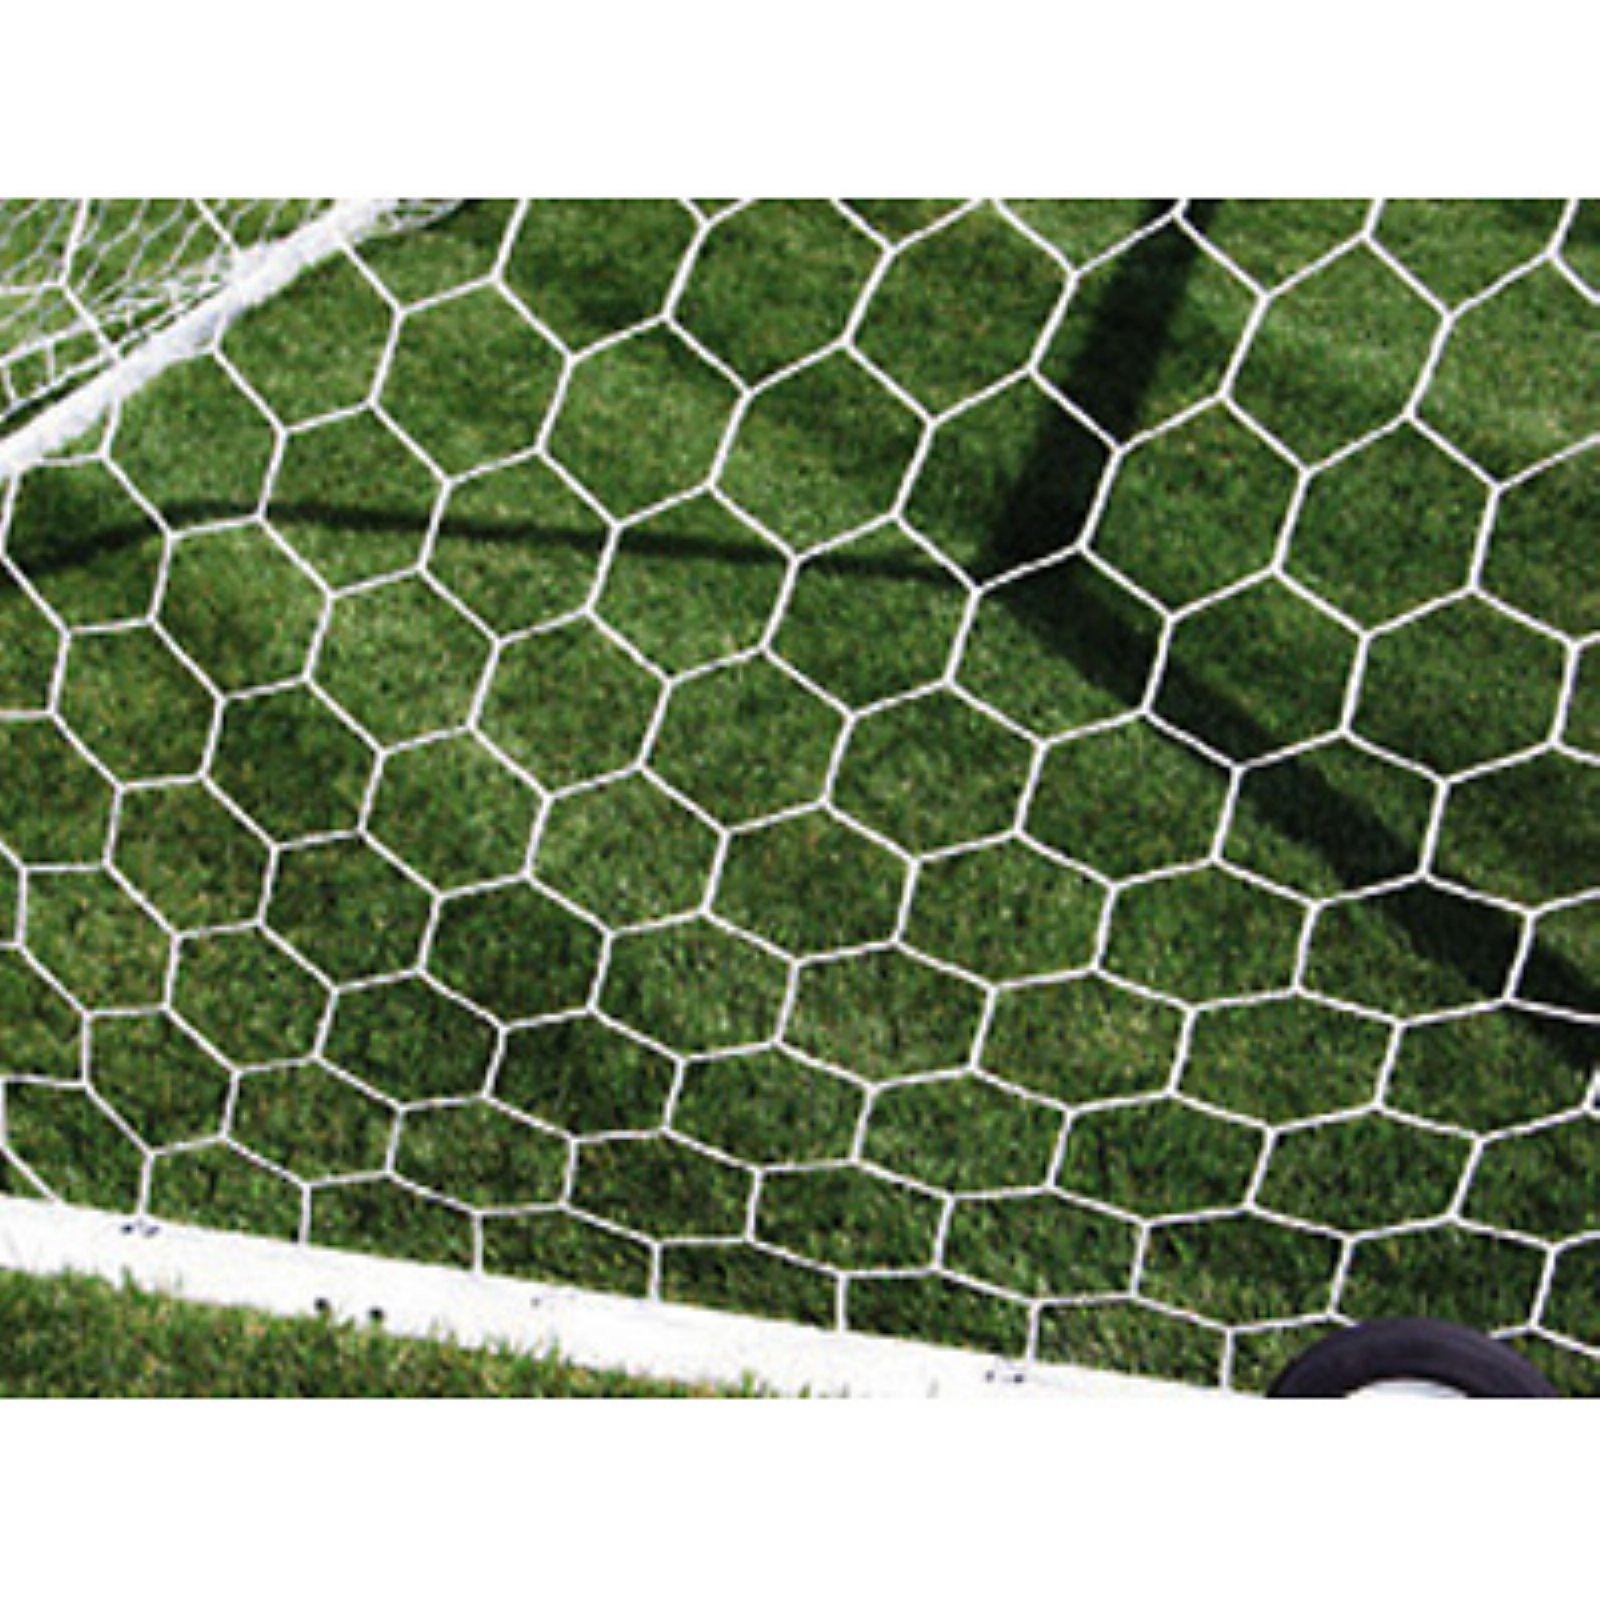 First Team White 3mm Hexagonal Soccer Net